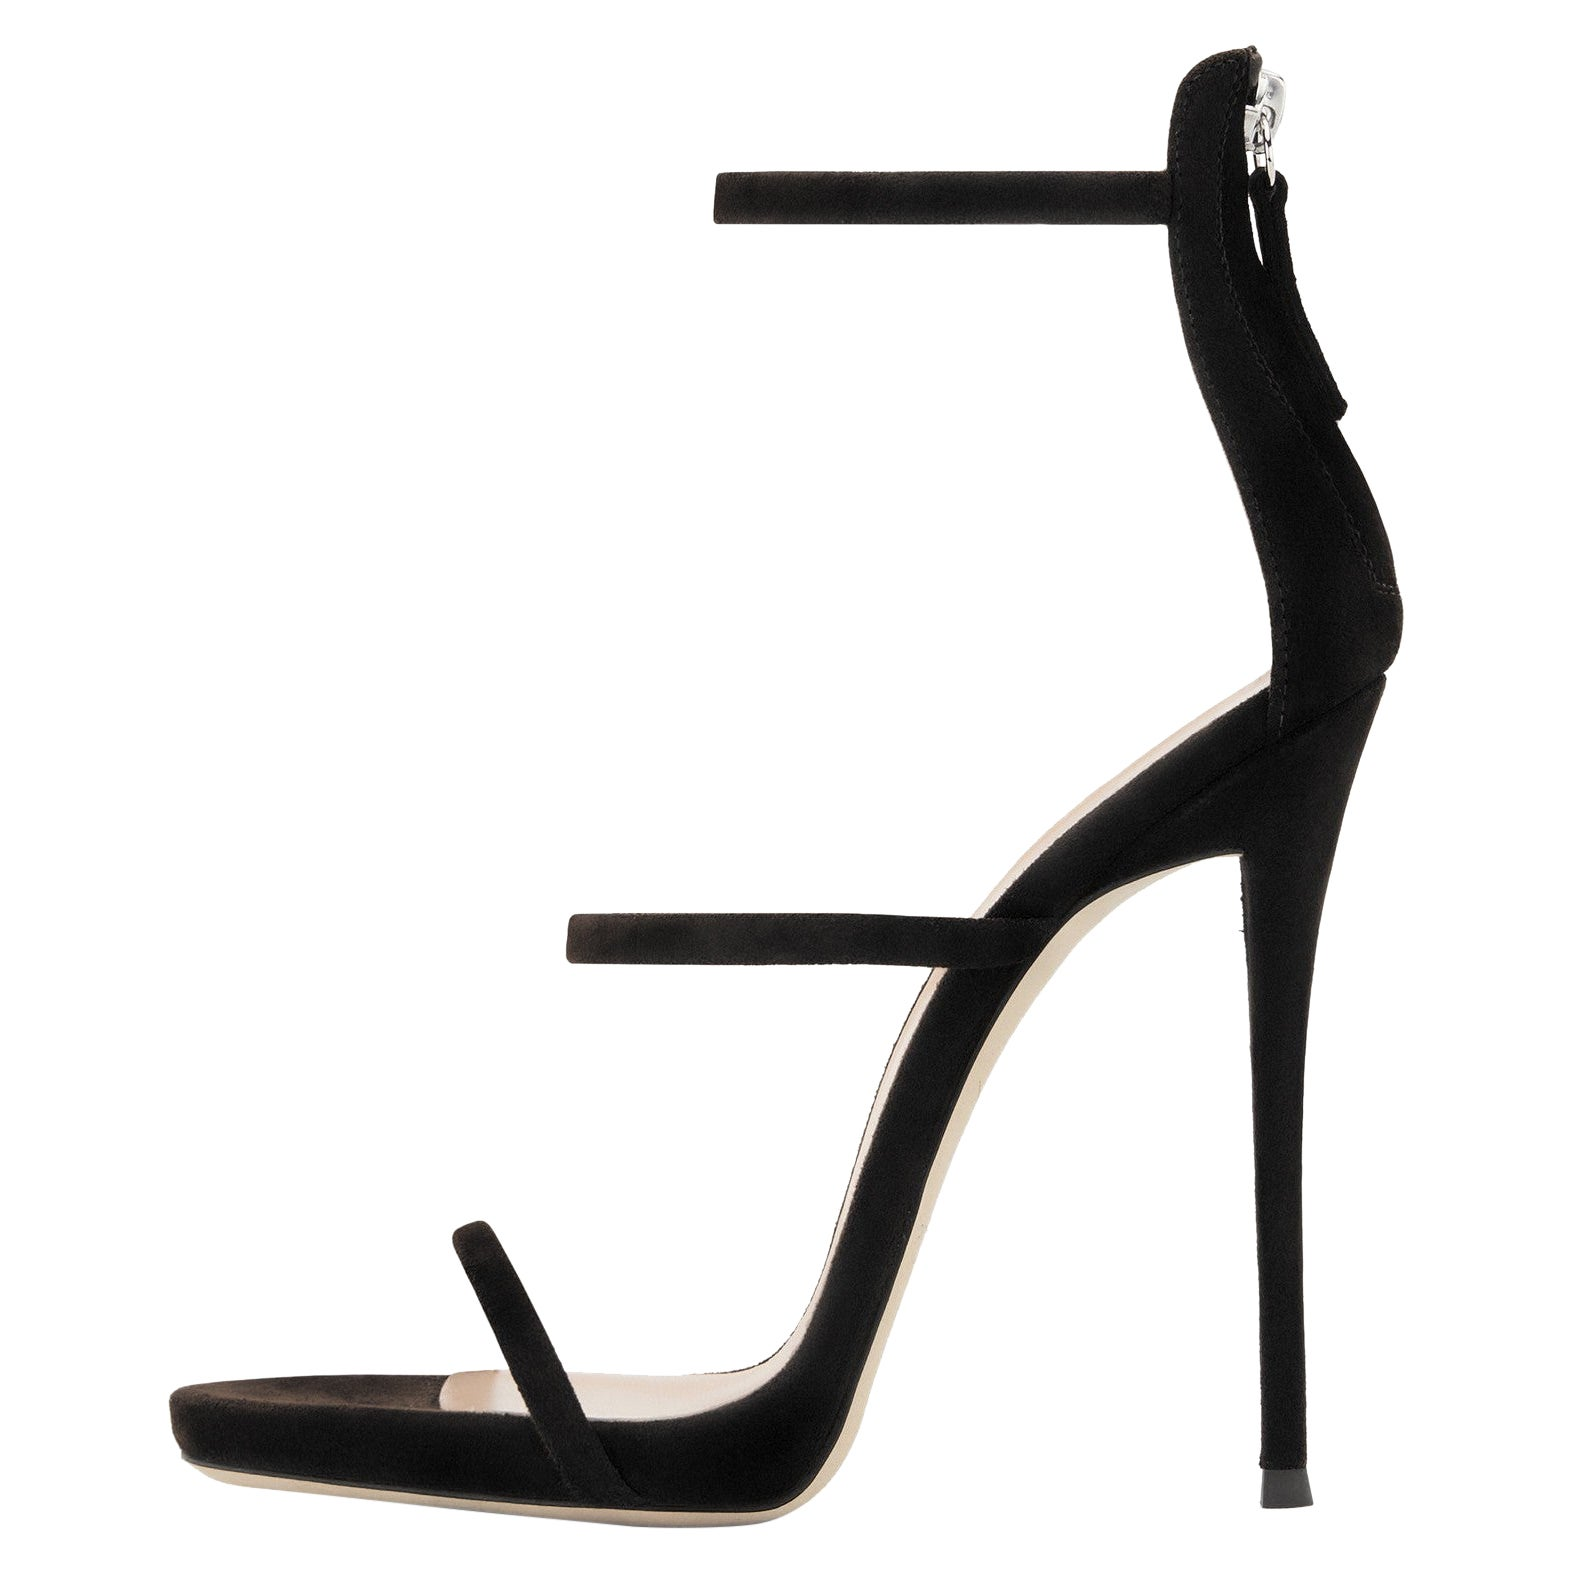 Giuseppe Zanotti NEW Black Suede Strappy Evening Sandals Heels in Box (IT 41)